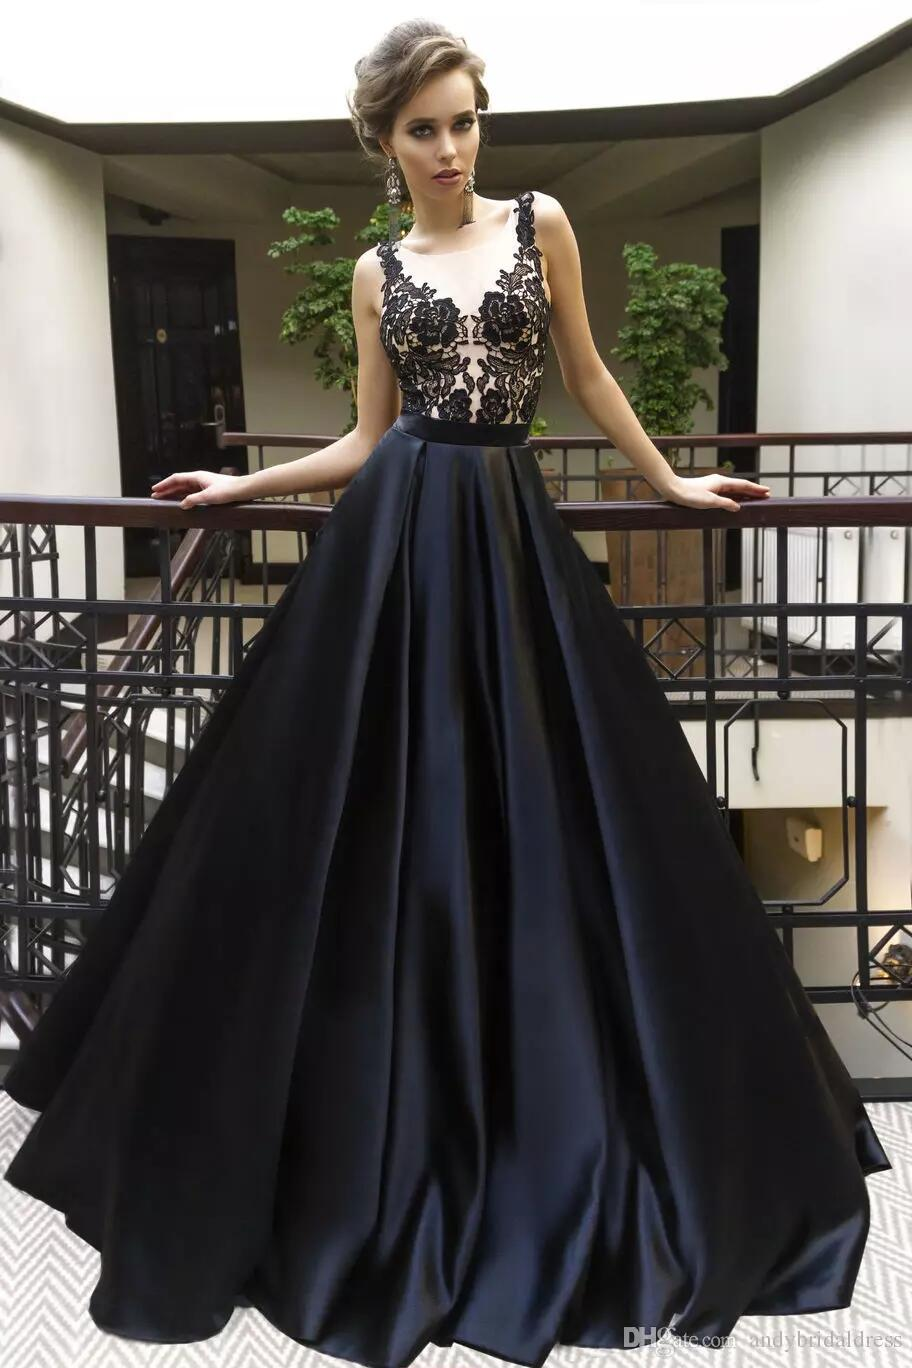 Sexy Black Applique Prom Dresses With Illusion Bodice